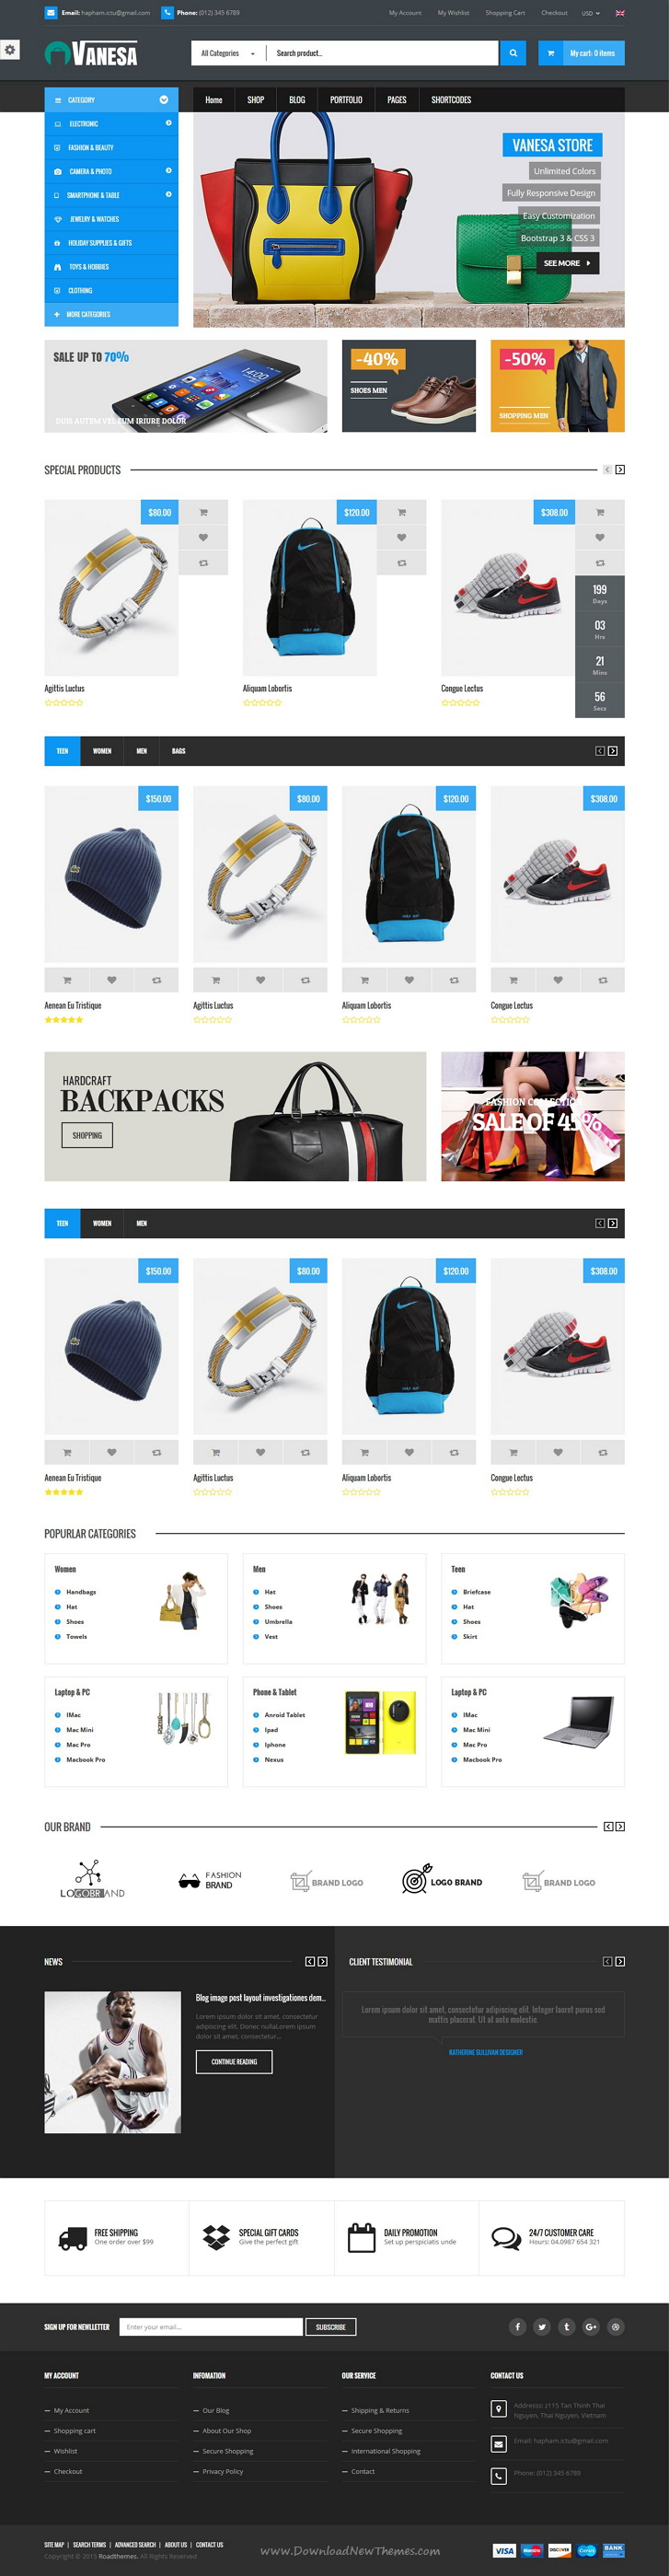 Vanesa is modern and trendy Responsive Shopify #Template for multipurpose eCommerce #website. It has 10 stunning homepage variation. #onlineshop Download Now!